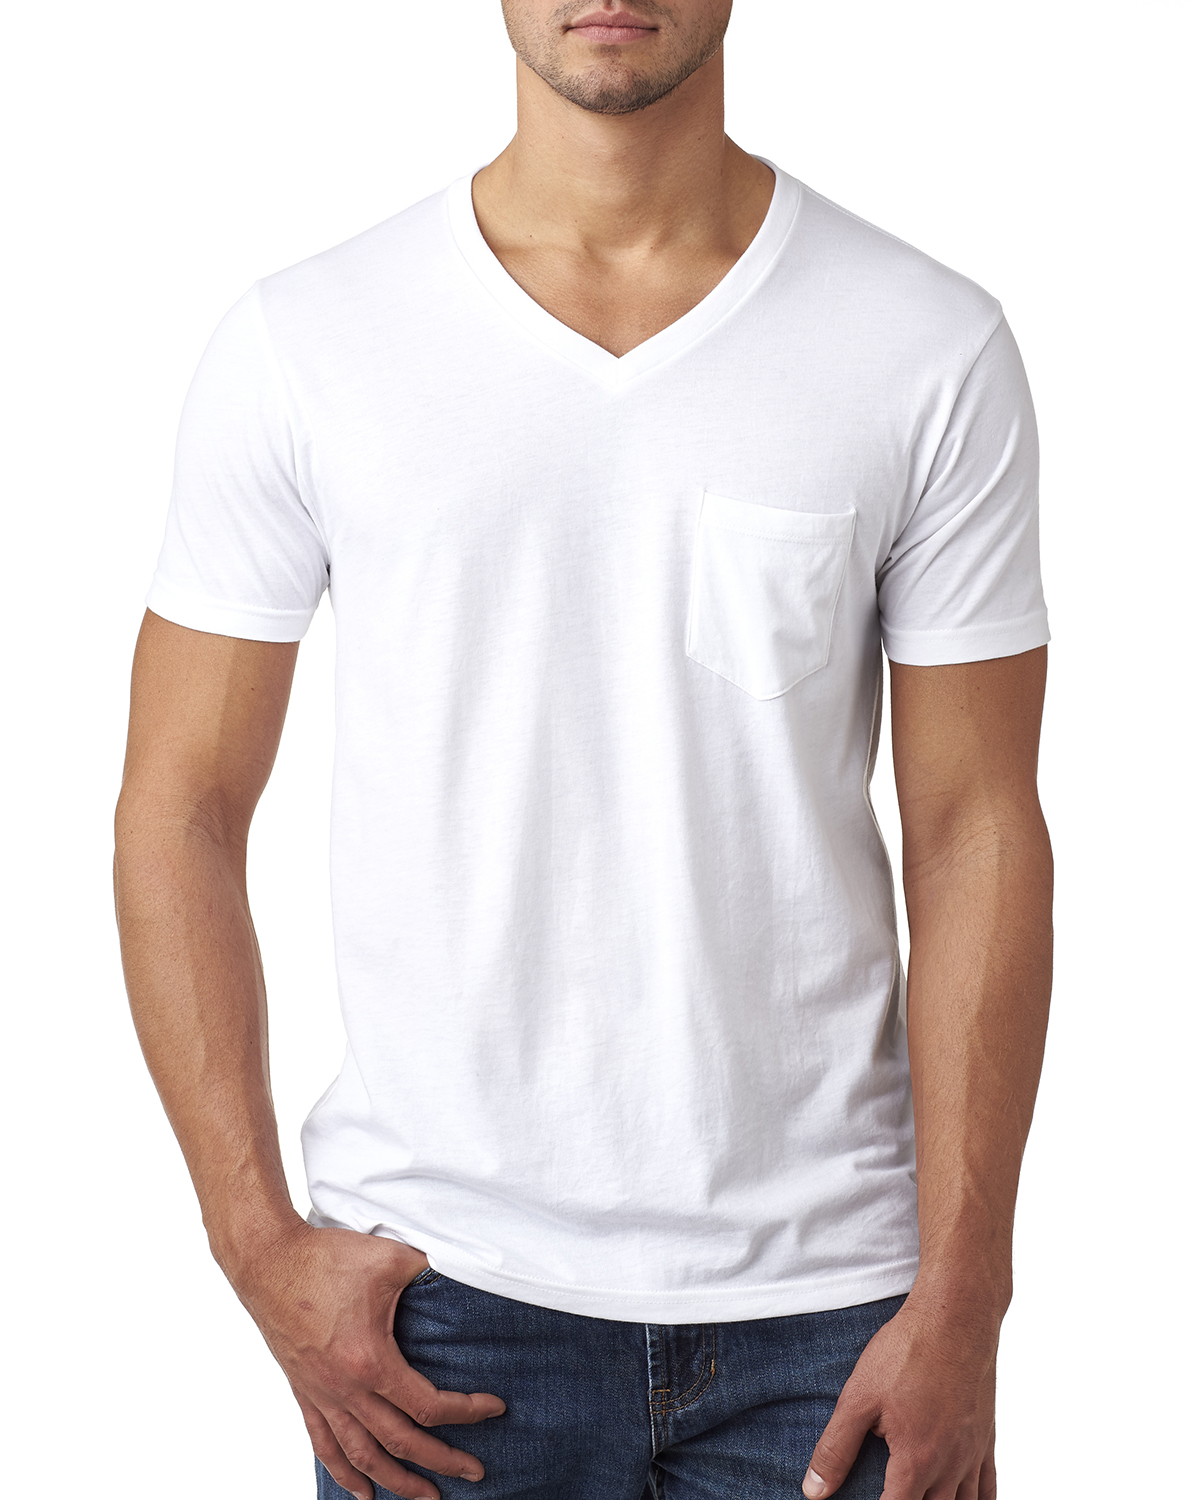 80372a4a3e56b2 Next Level Apparel 3600A - Men s Made in USA Cotton Crew  6.99 ...